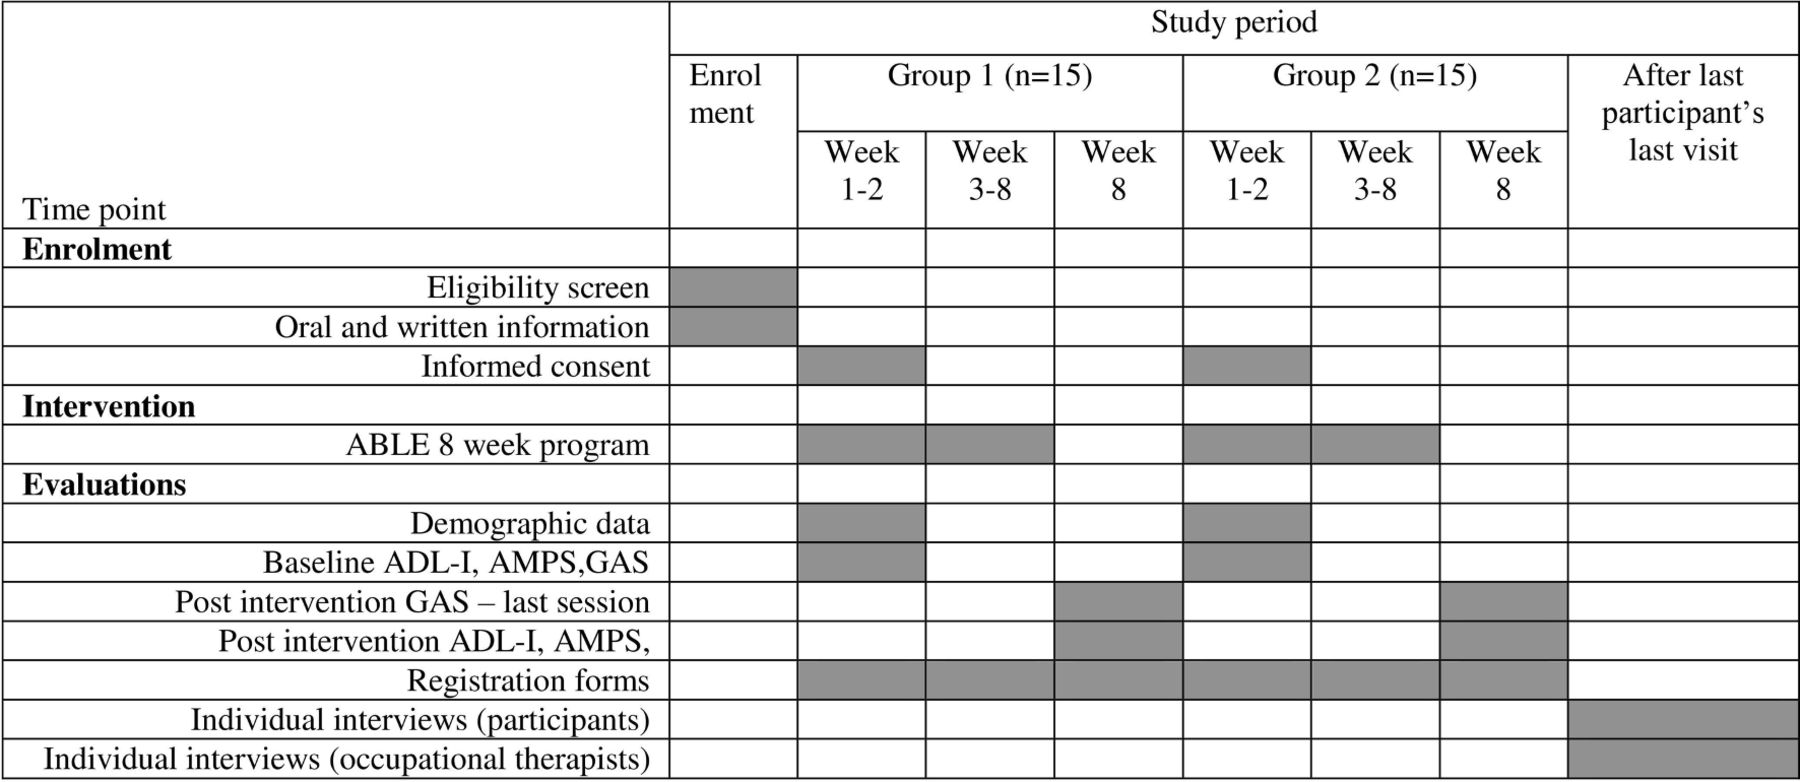 Evaluation Of An Intervention Programme Addressing Ability To Perform Activities Of Daily Living